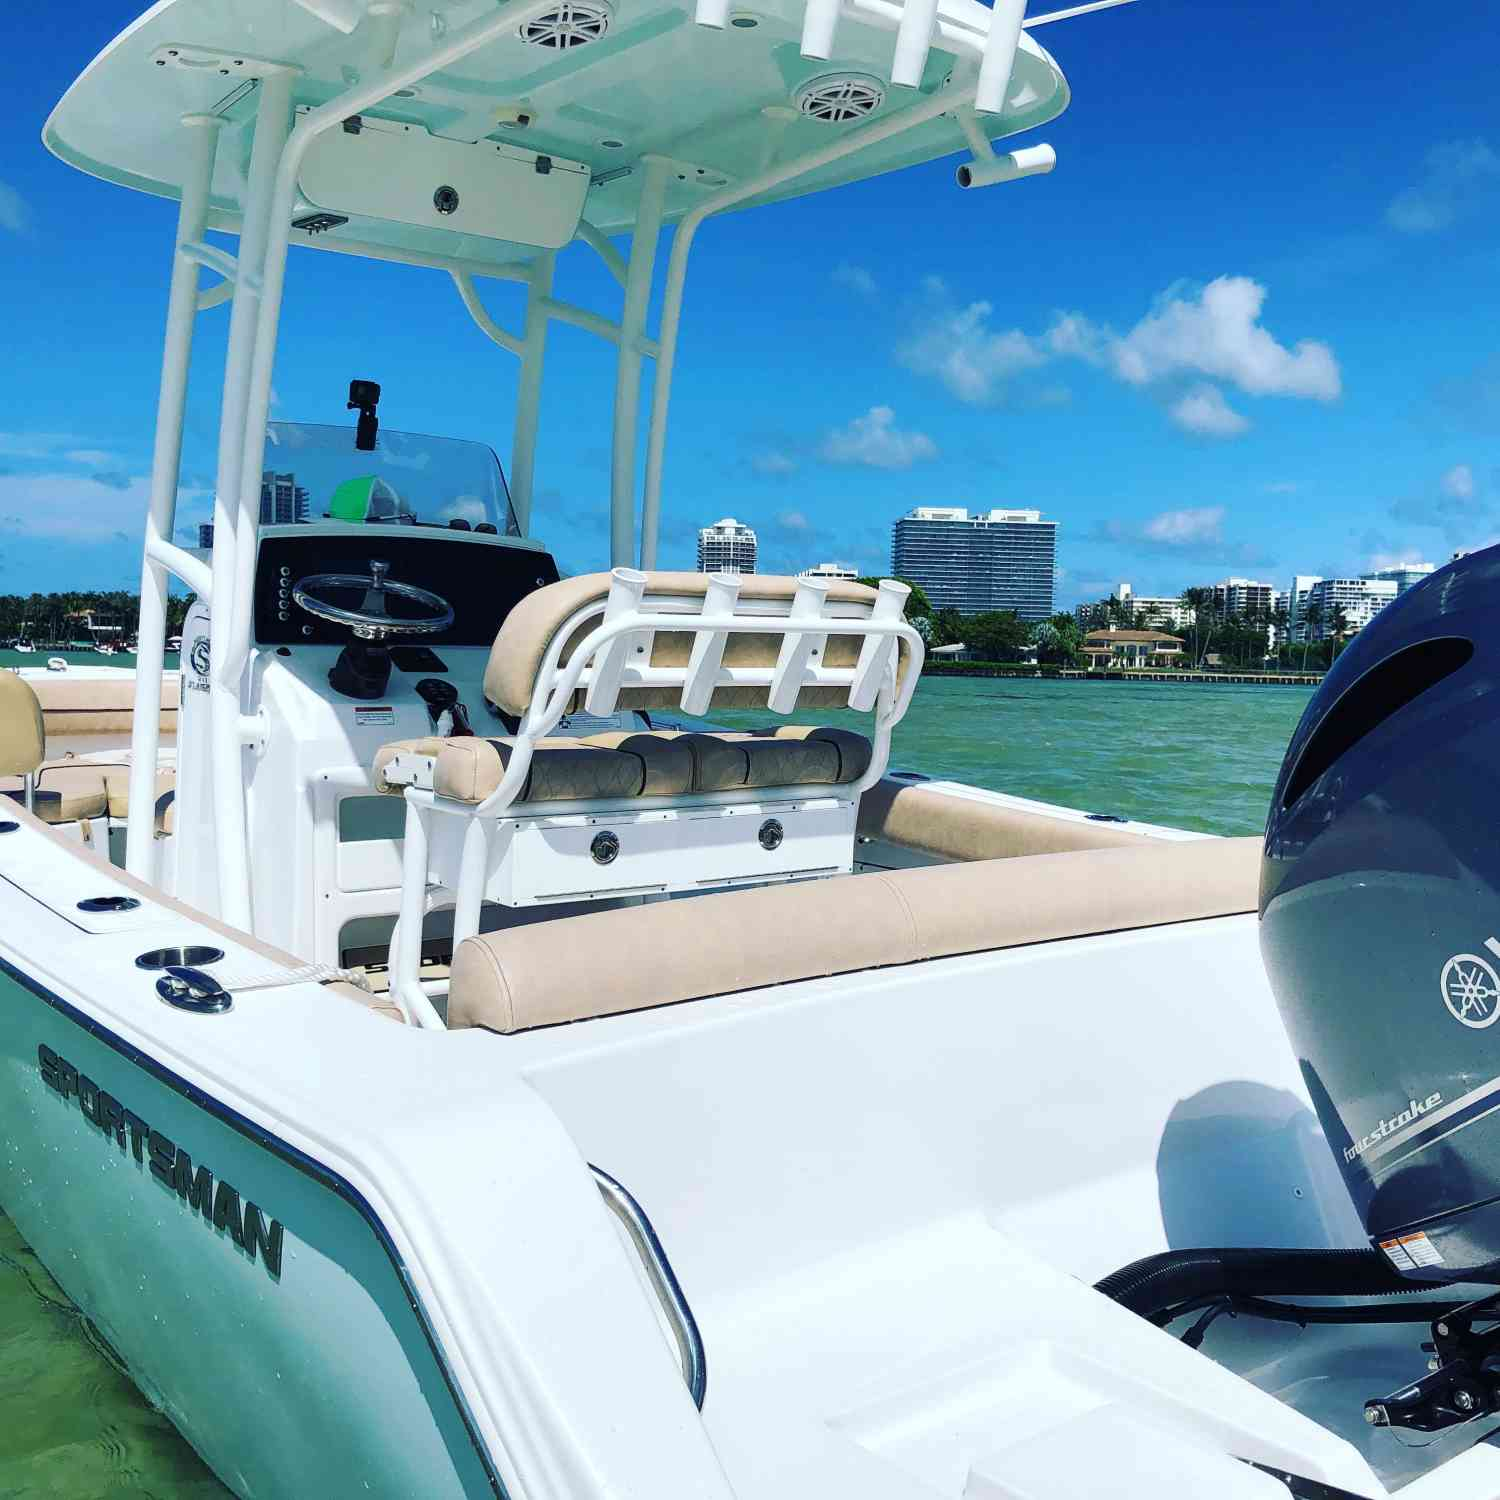 Title: Heritage 211 - On board their Sportsman Heritage 211 Center Console - Location: Haulover. Participating in the Photo Contest #SportsmanAugust2020